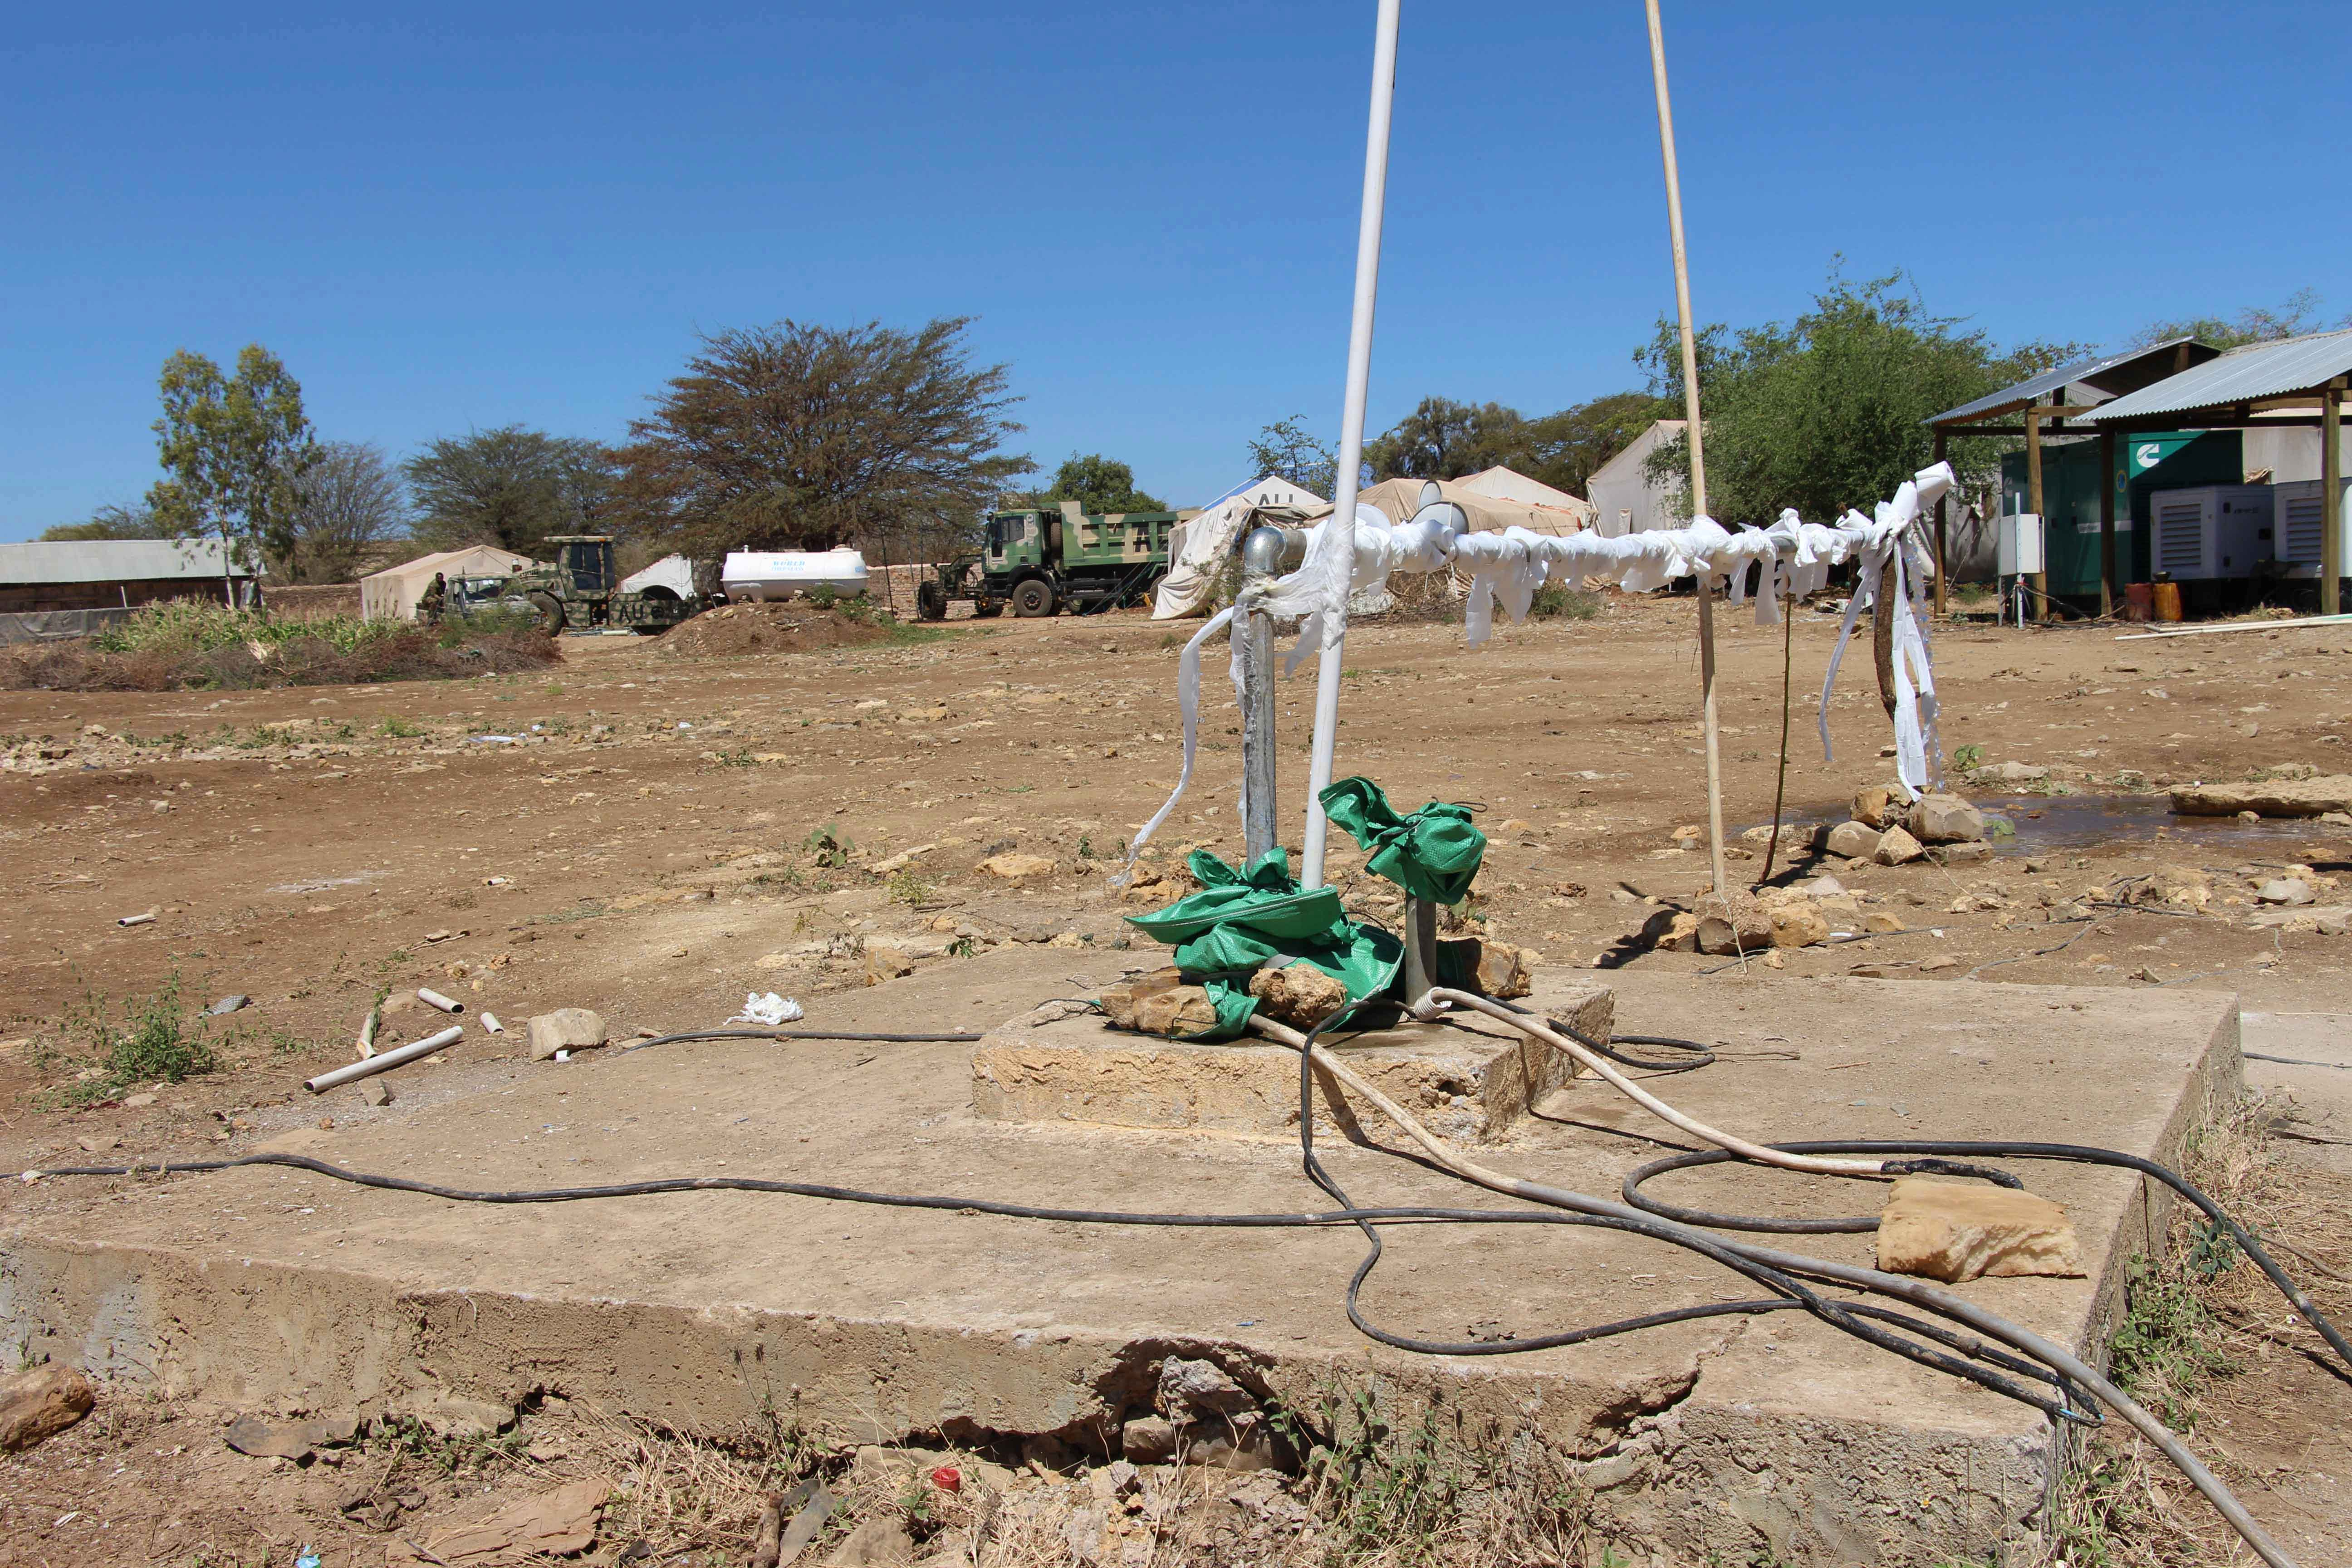 2017 04 ENDF Renovate Wells-1 (31955930662).jpg English: A piped system at a water well rehabilitated by the African Union Mission in Somalia